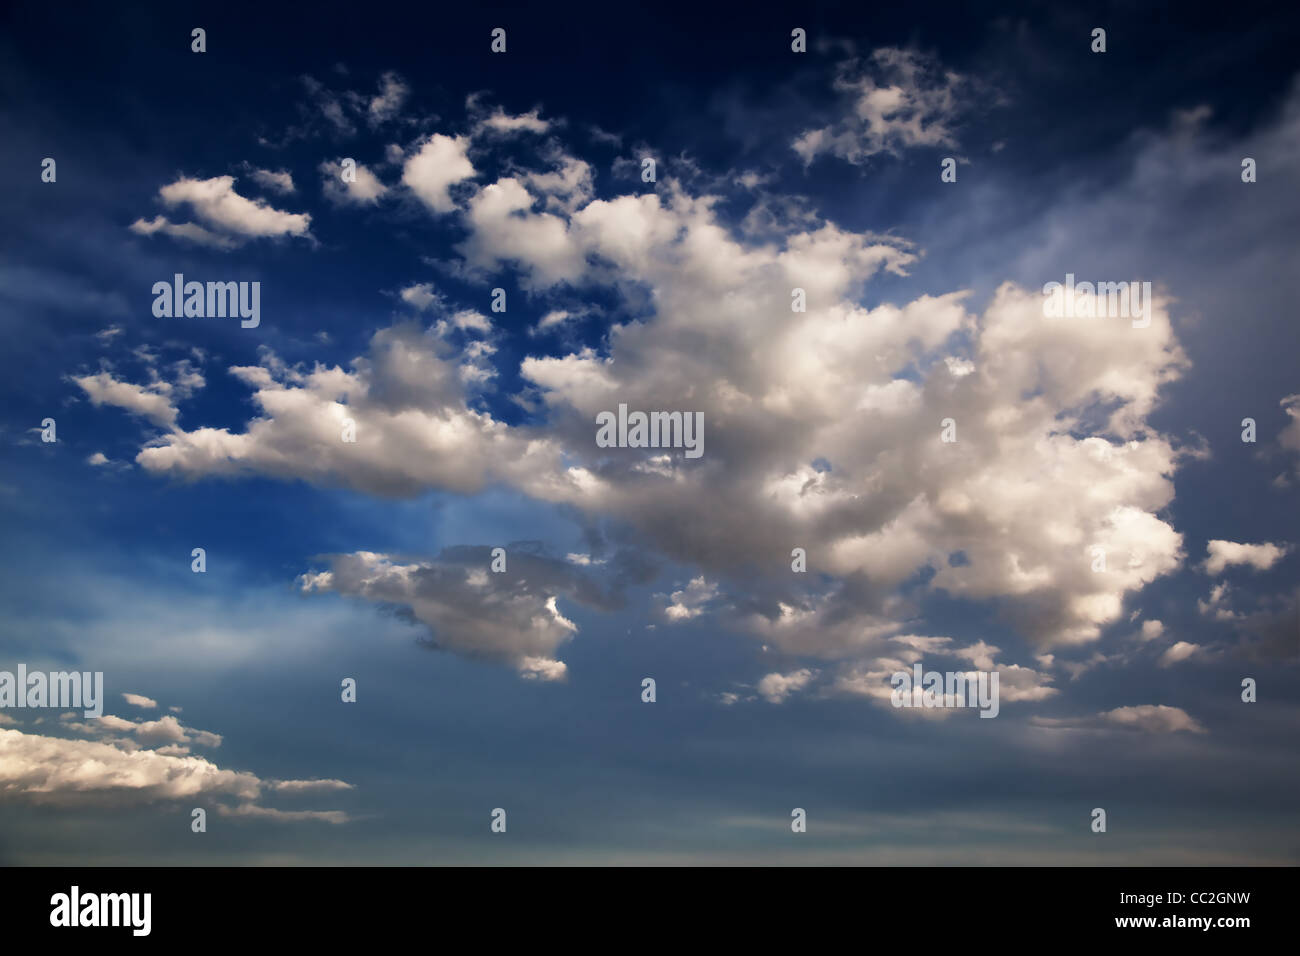 Blue Sky and clouds background - Stock Image